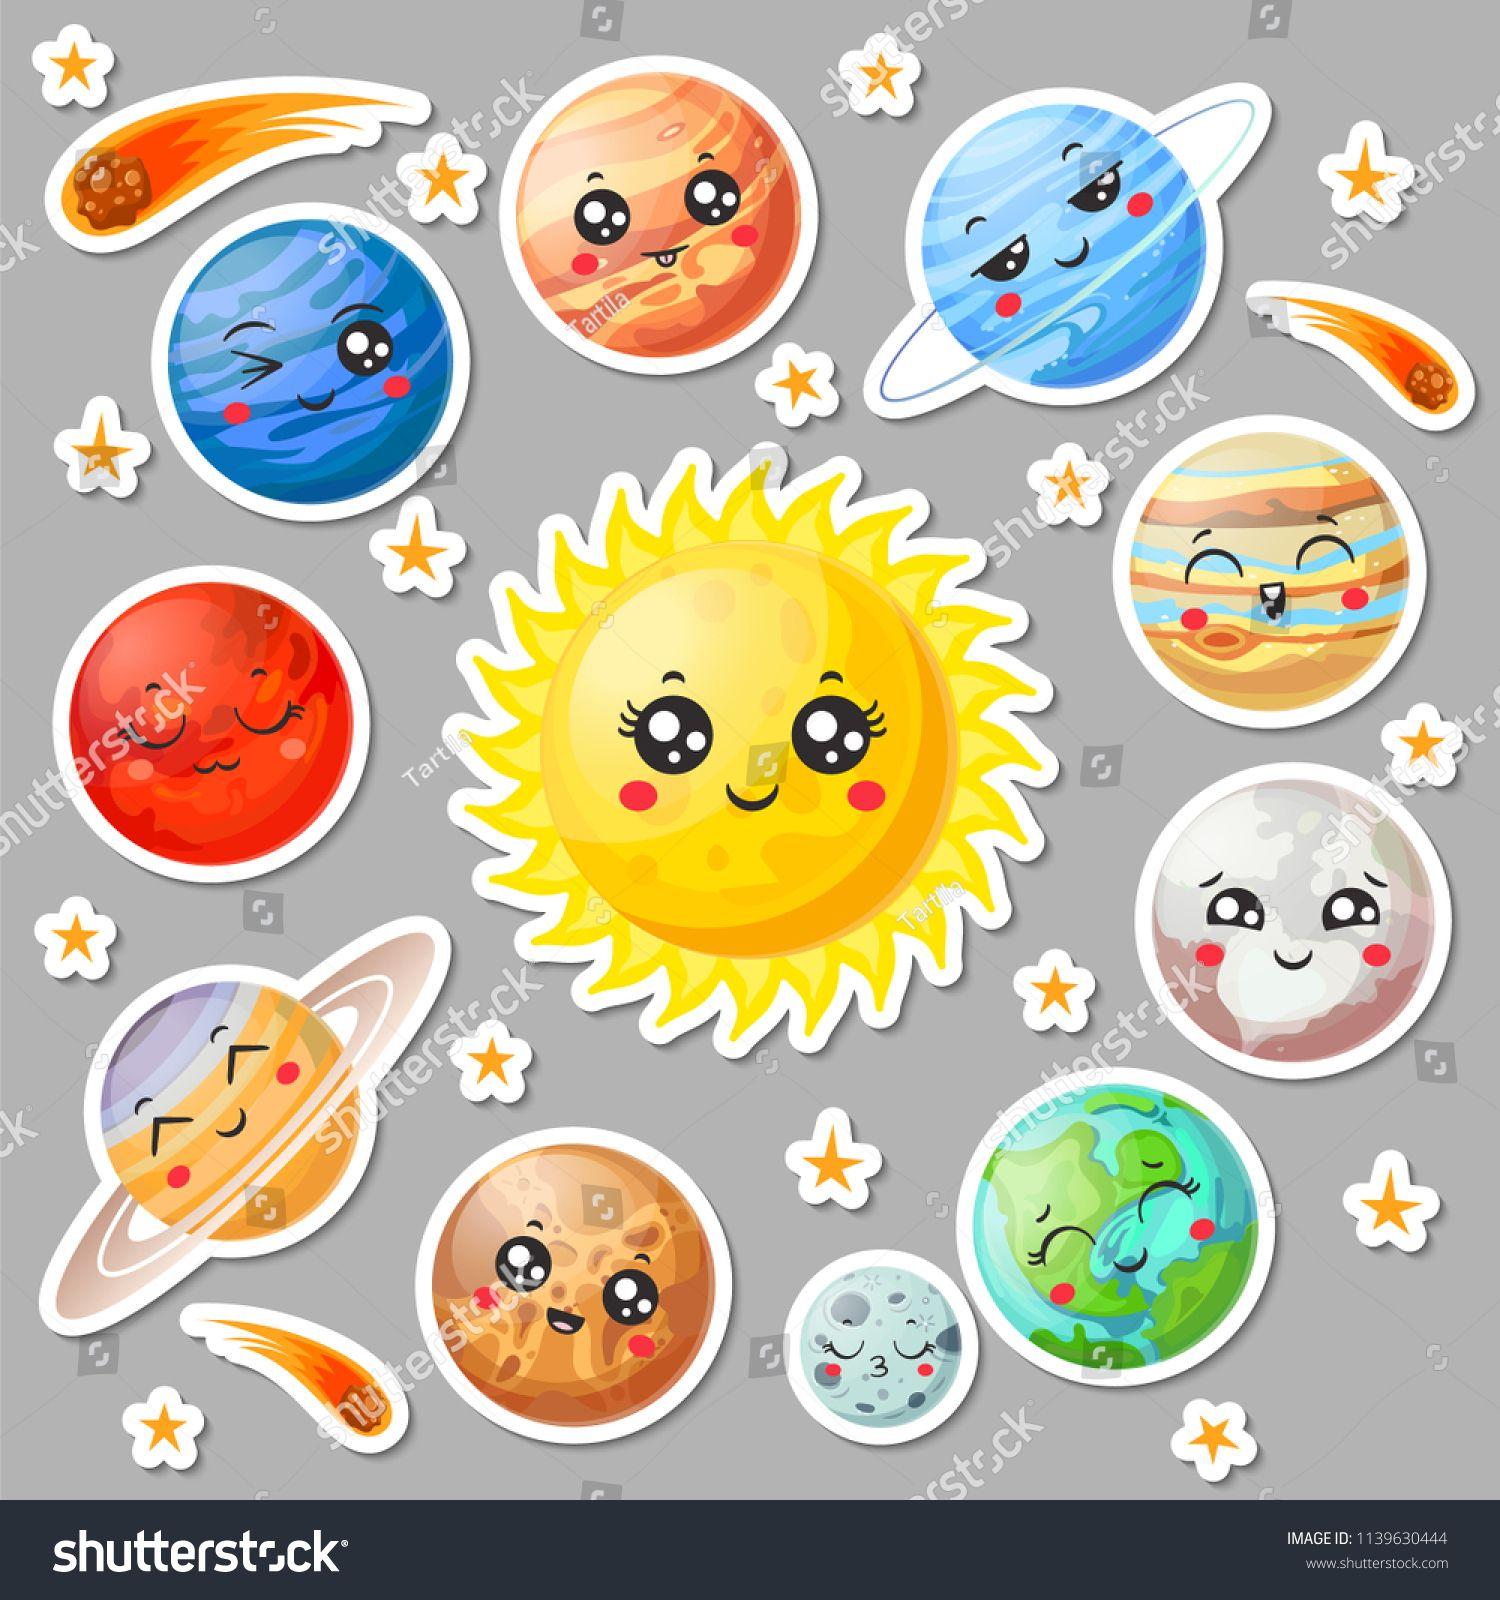 Astronomy clipart cute. Cartoon planets stickers happy